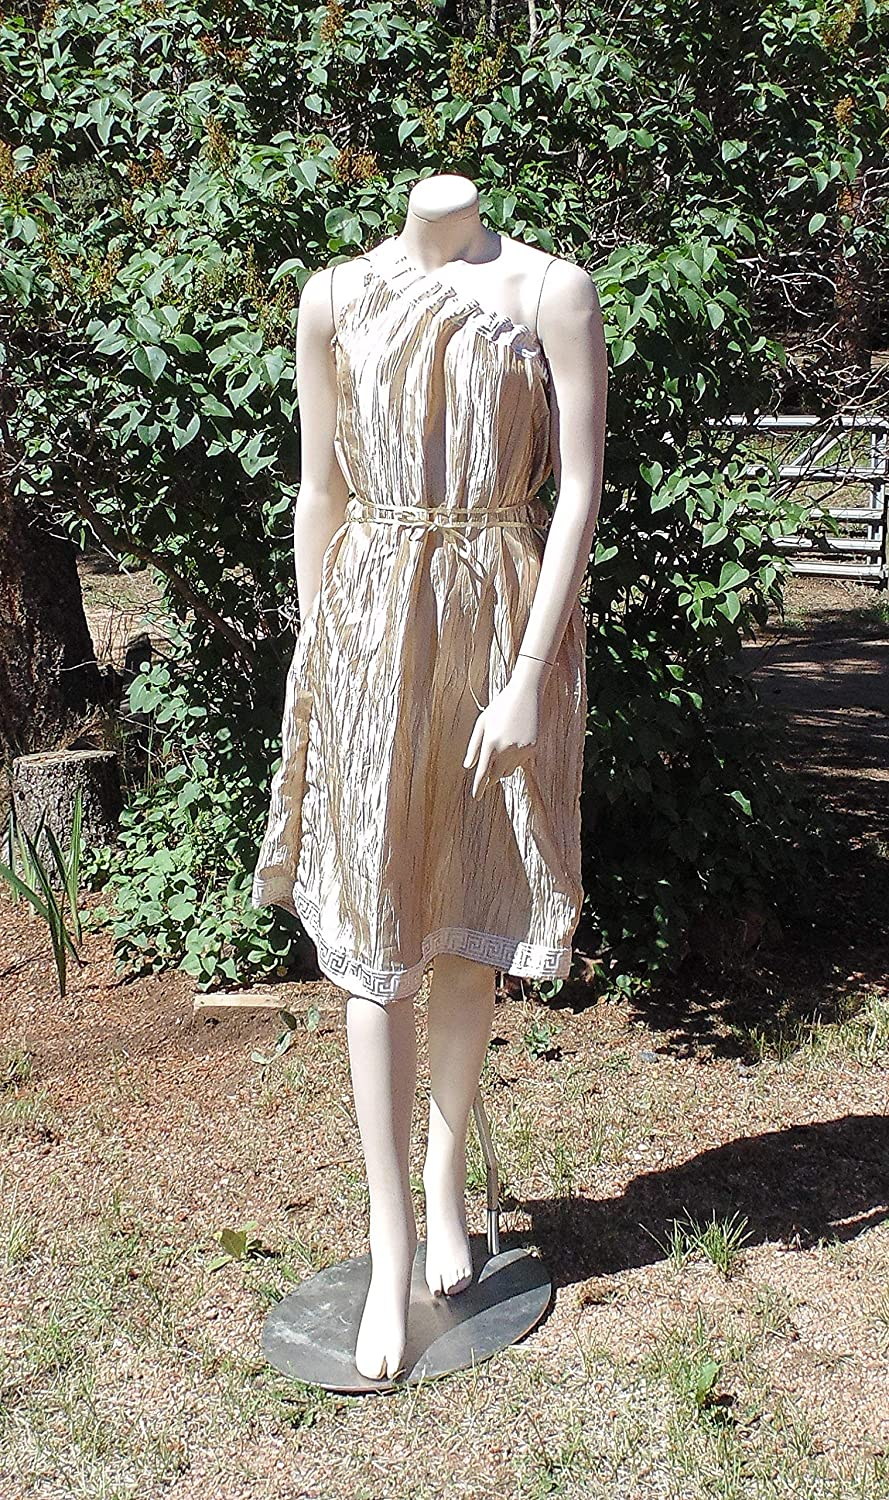 8b67bb9eb0e6 Grecian Goddess is Trimmed in Gold and white greek key Trim and comes with a  gold Ribbon belt. i added a few simple belt loops ...